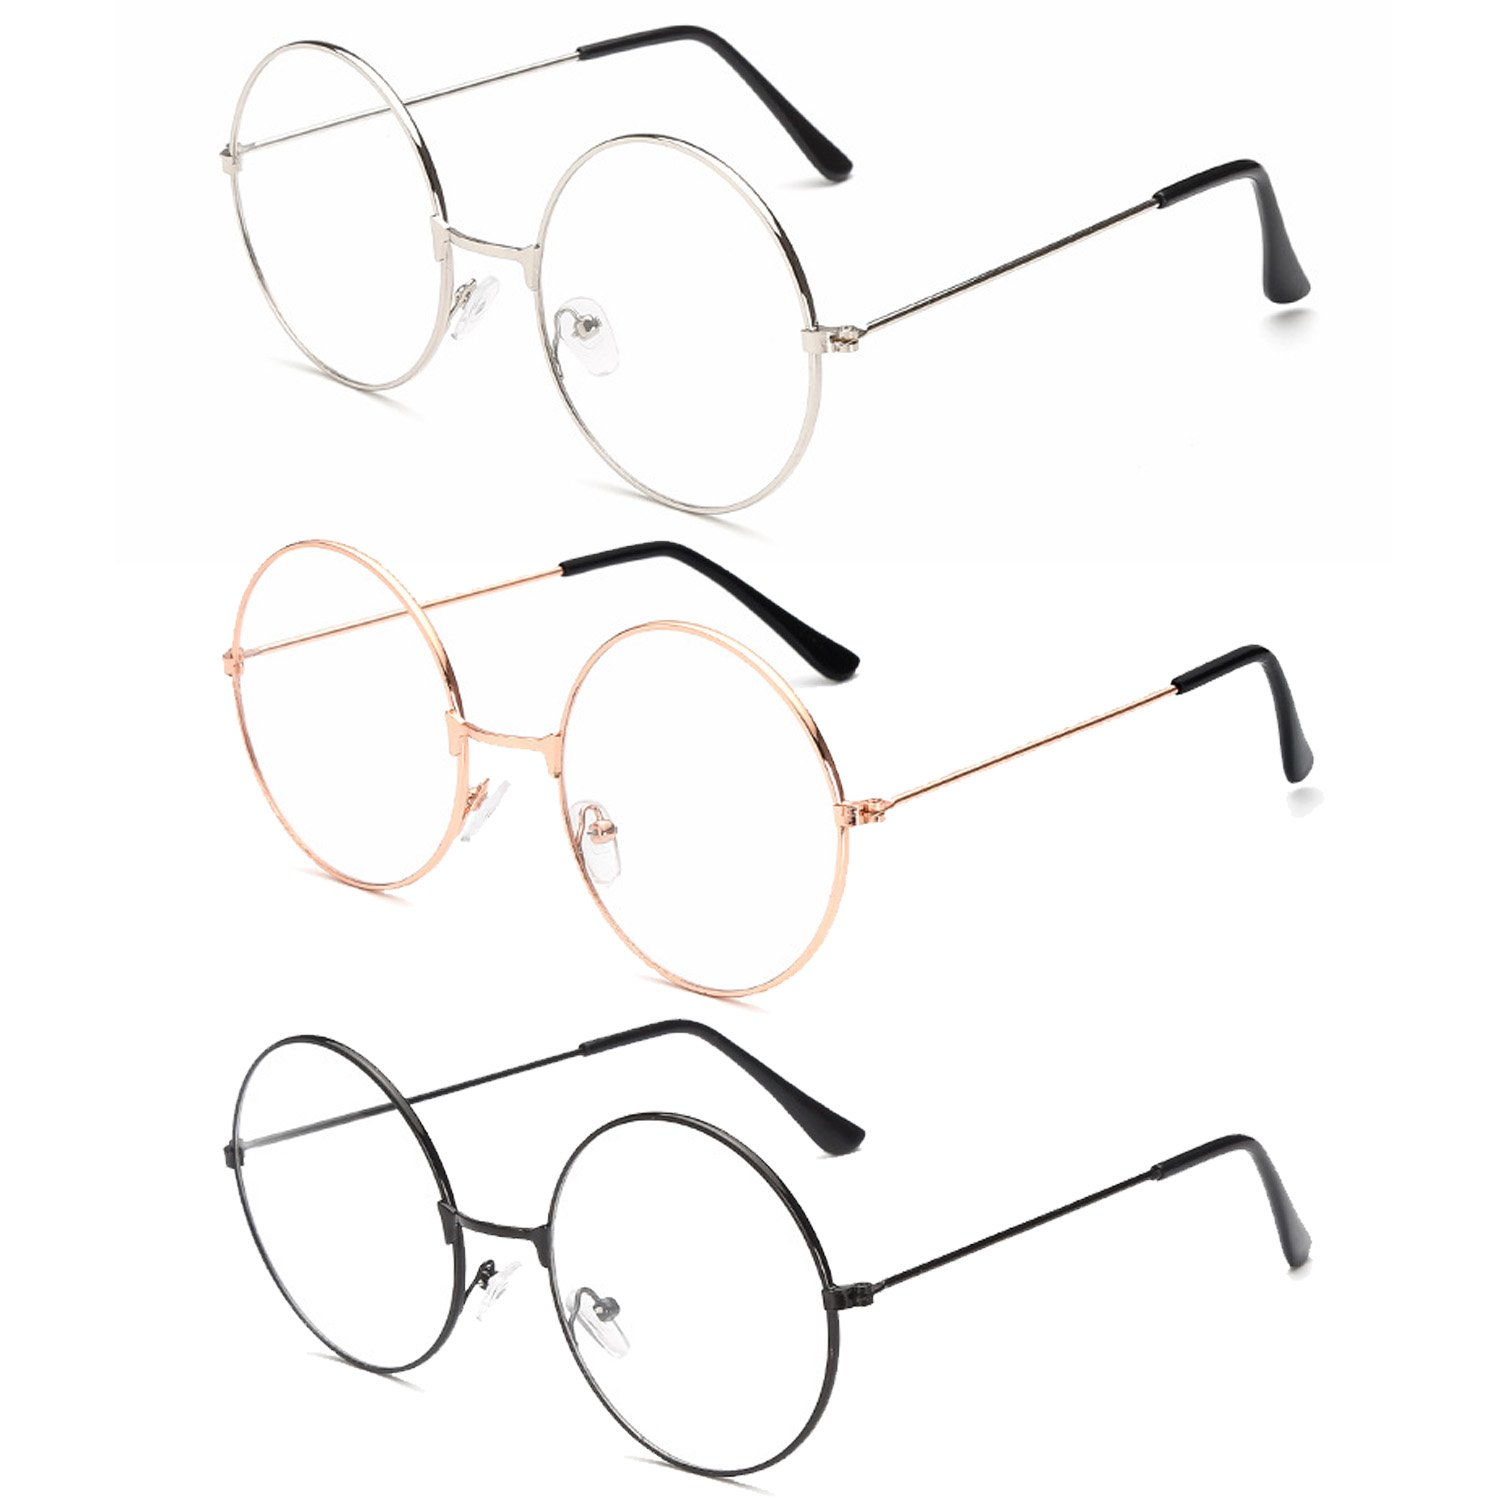 31539bd00608 Amazon.com  3Pairs Unisex Retro Round Eyeglasses 3 Different Color Circle  Metal Frame Clear Lens Glasses for Women Men  Home Improvement